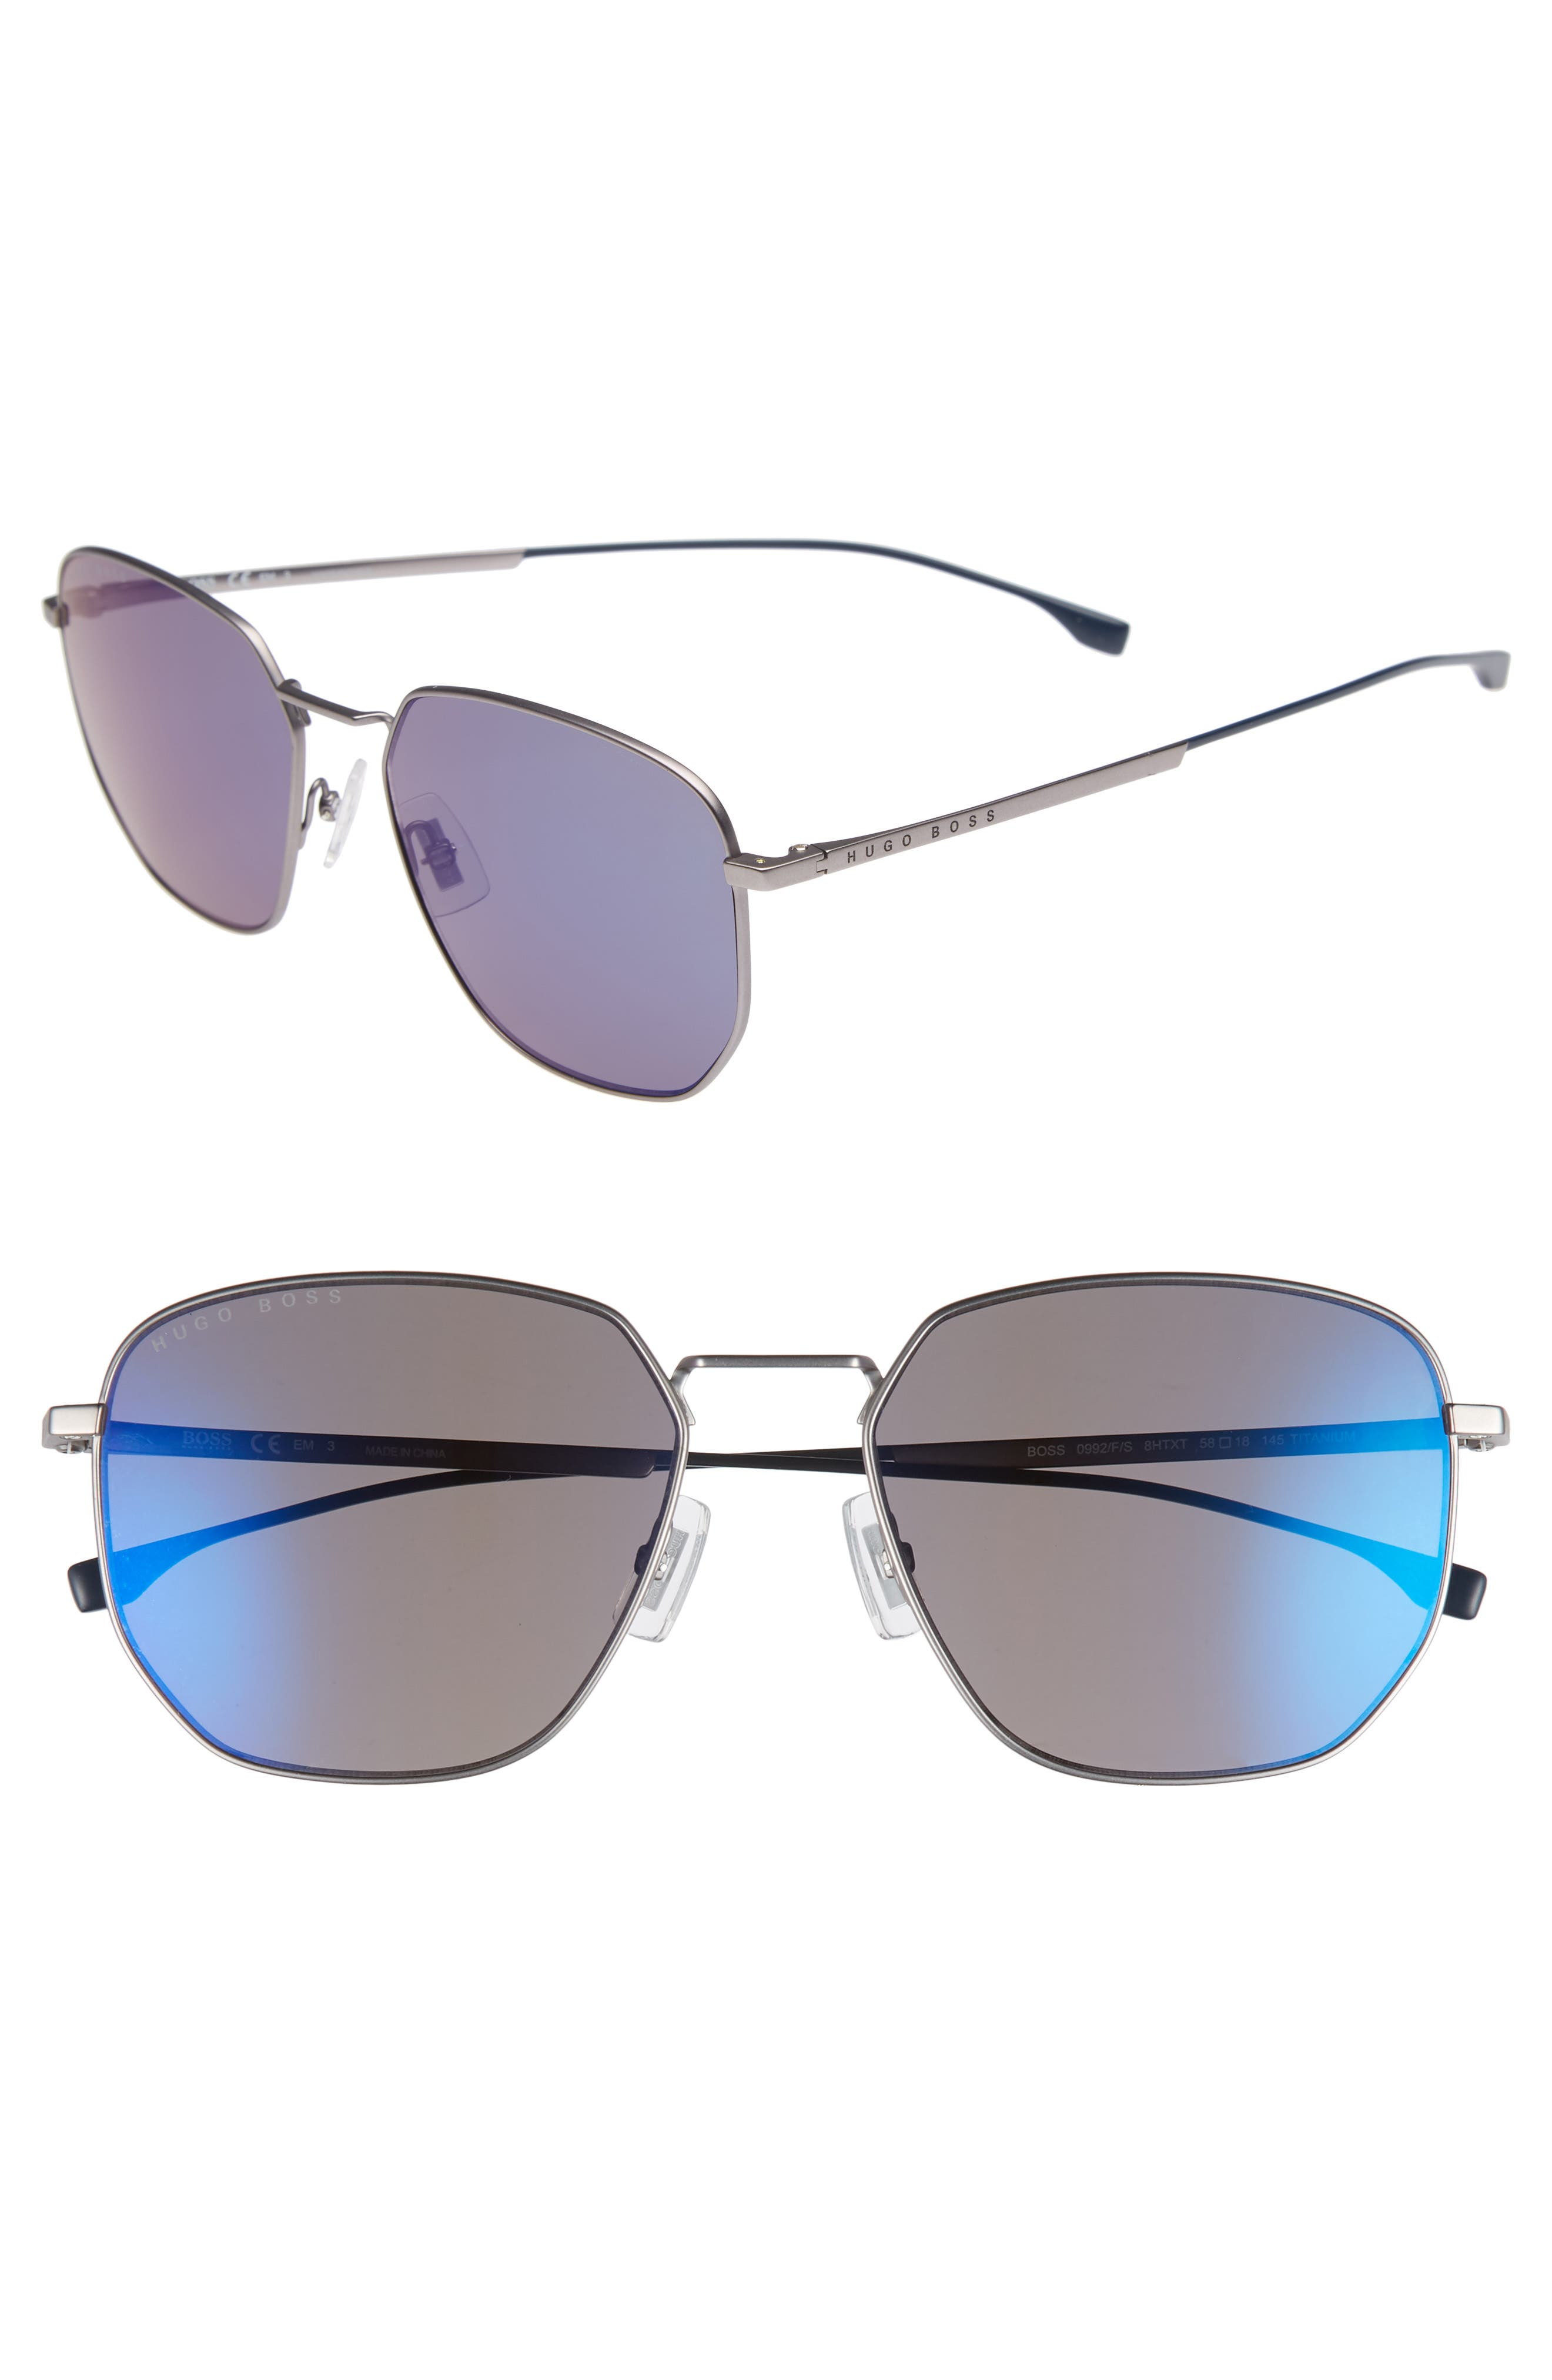 Special Fit 58mm Polarized Titanium Aviator Sunglasses,                             Main thumbnail 1, color,                             Grey/ Blue